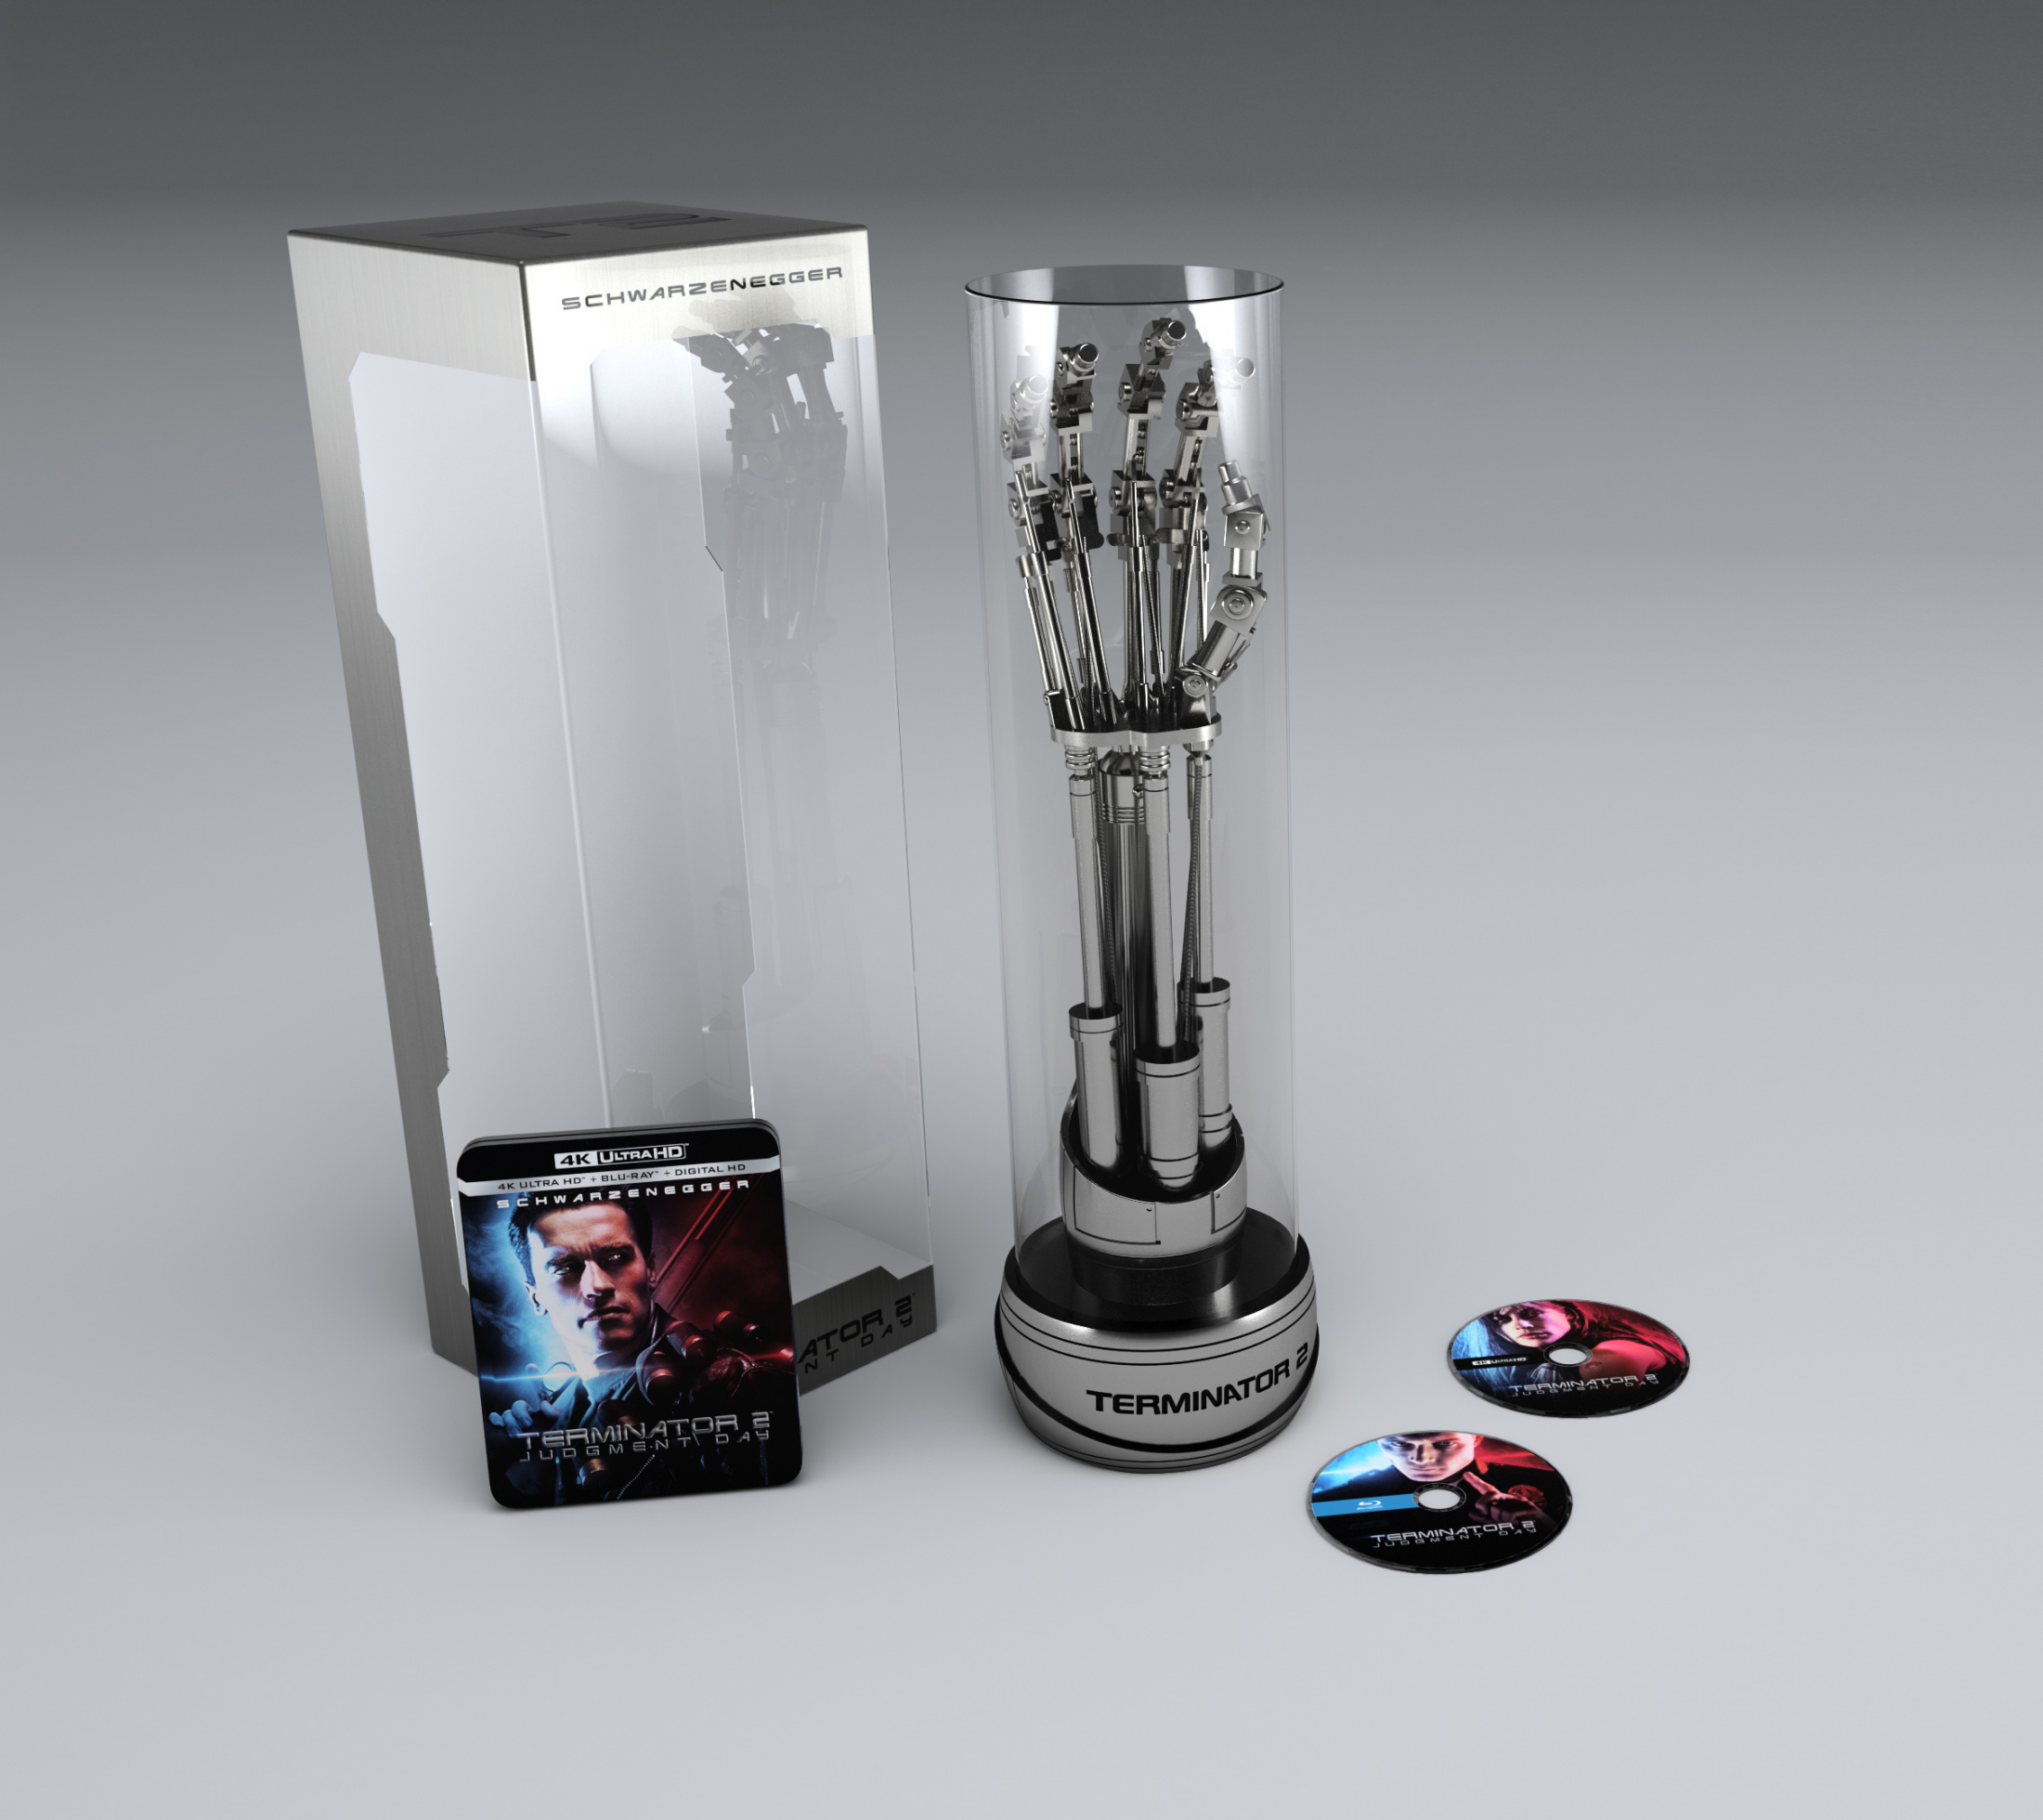 Image Media for Terminator 2: Judgment Day 4K UHD - Endoarm Collector's Edition